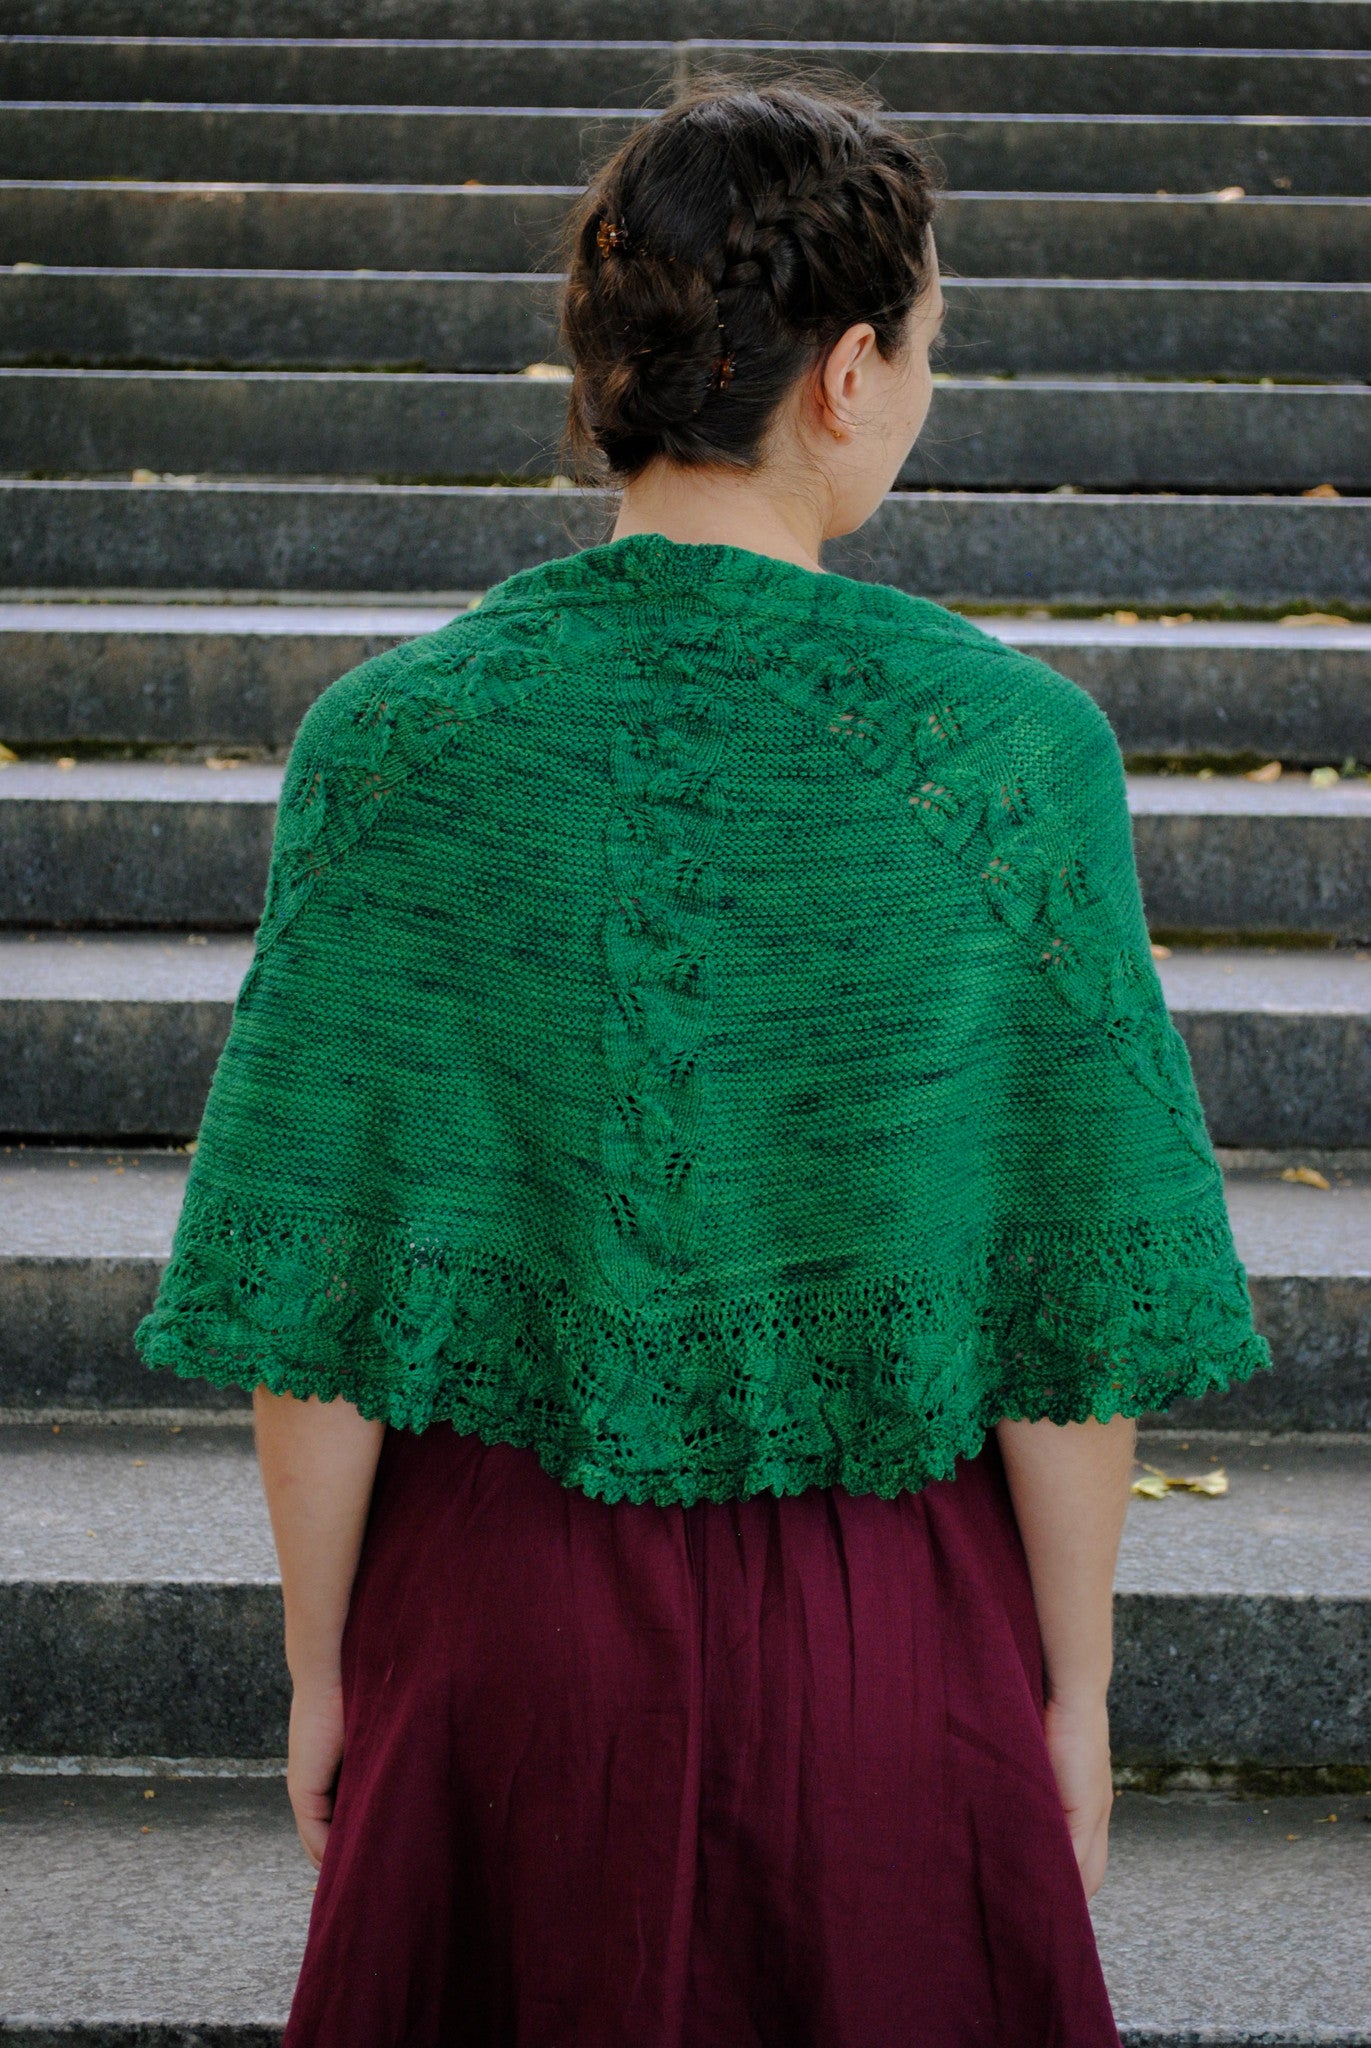 Medeina lace shawl pattern with leaf motifs